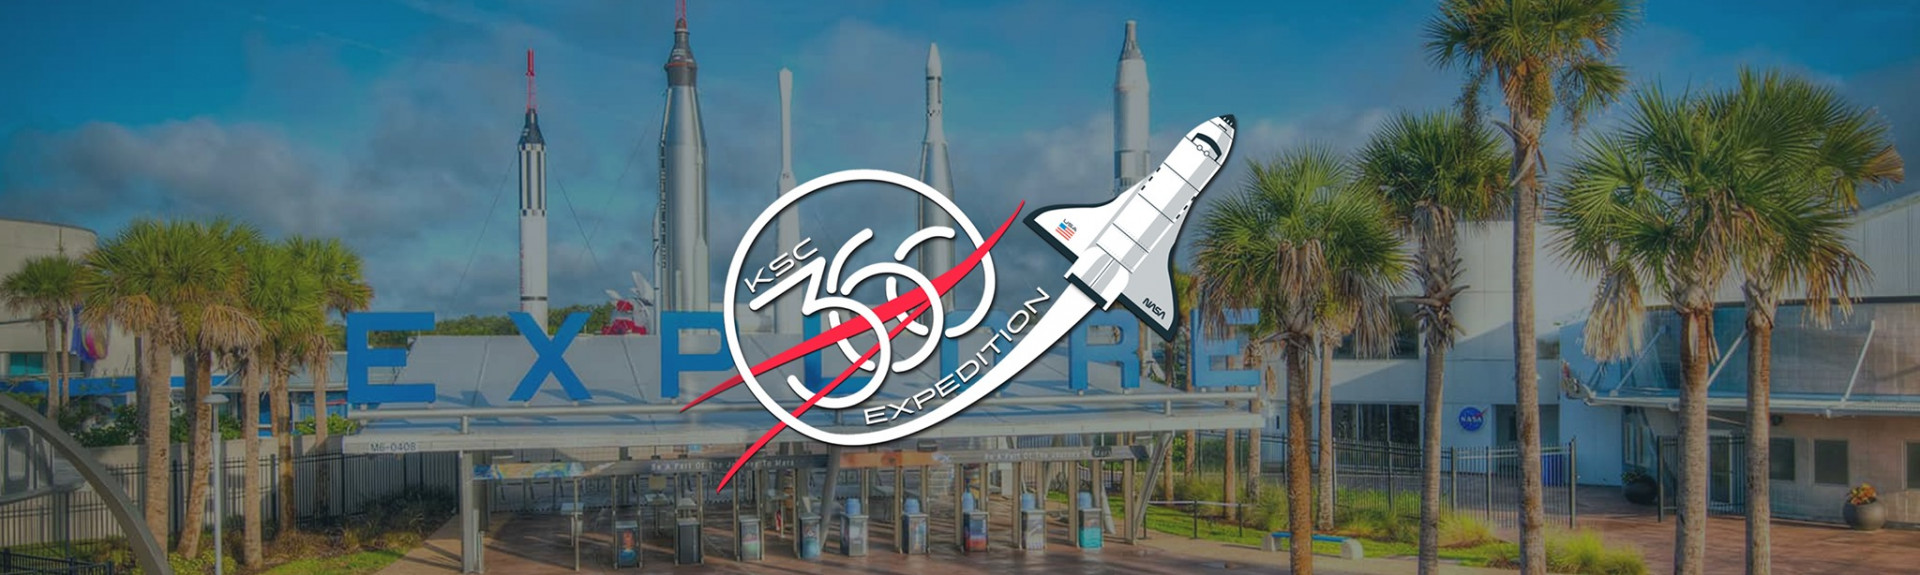 KSC 360 Expedition